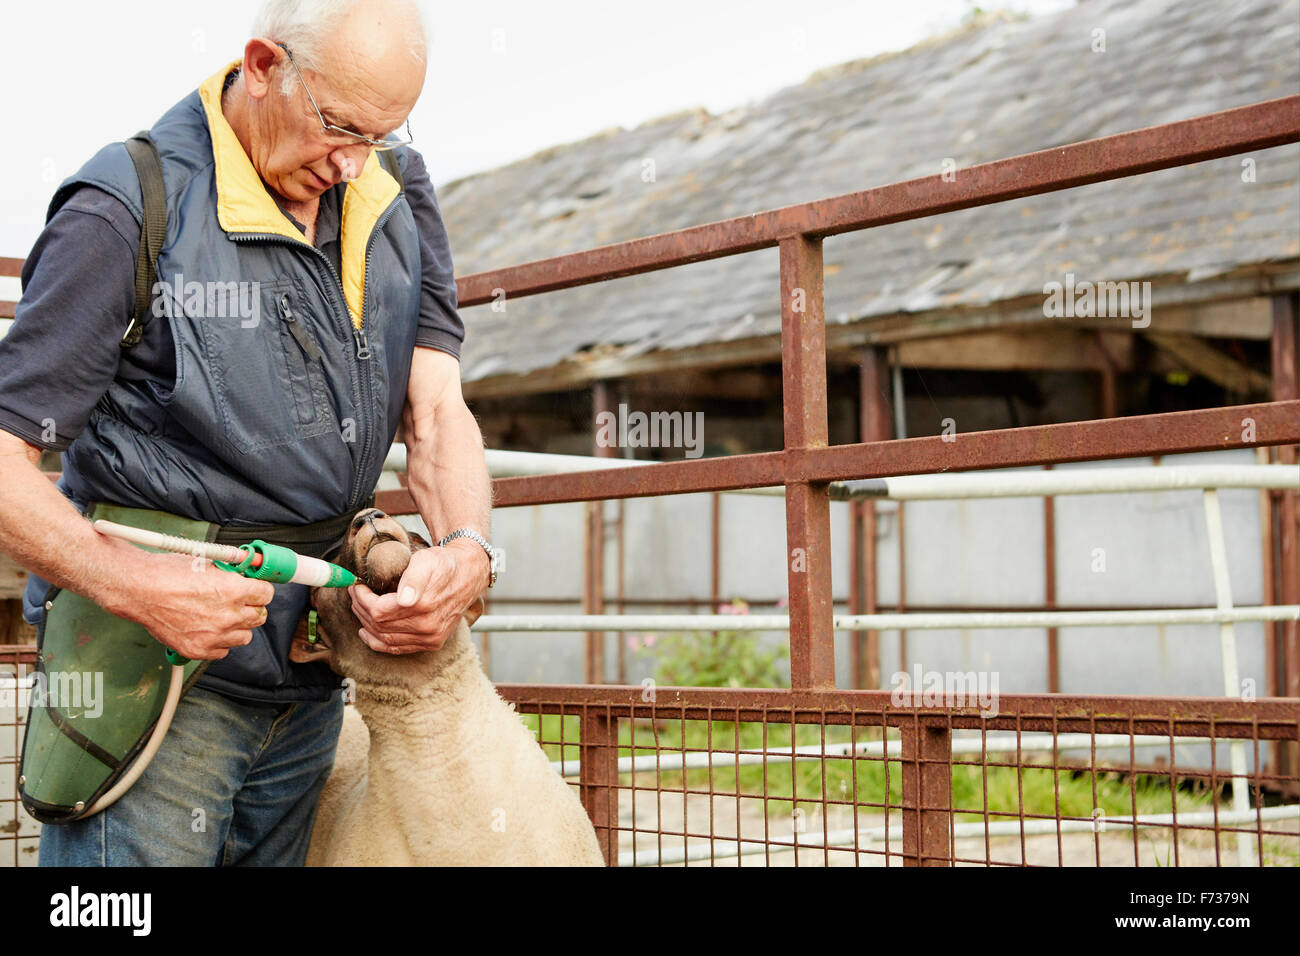 A farmer in overalls holding a sheep and delivering a treatment in his mouth with a trigger dispenser. - Stock Image